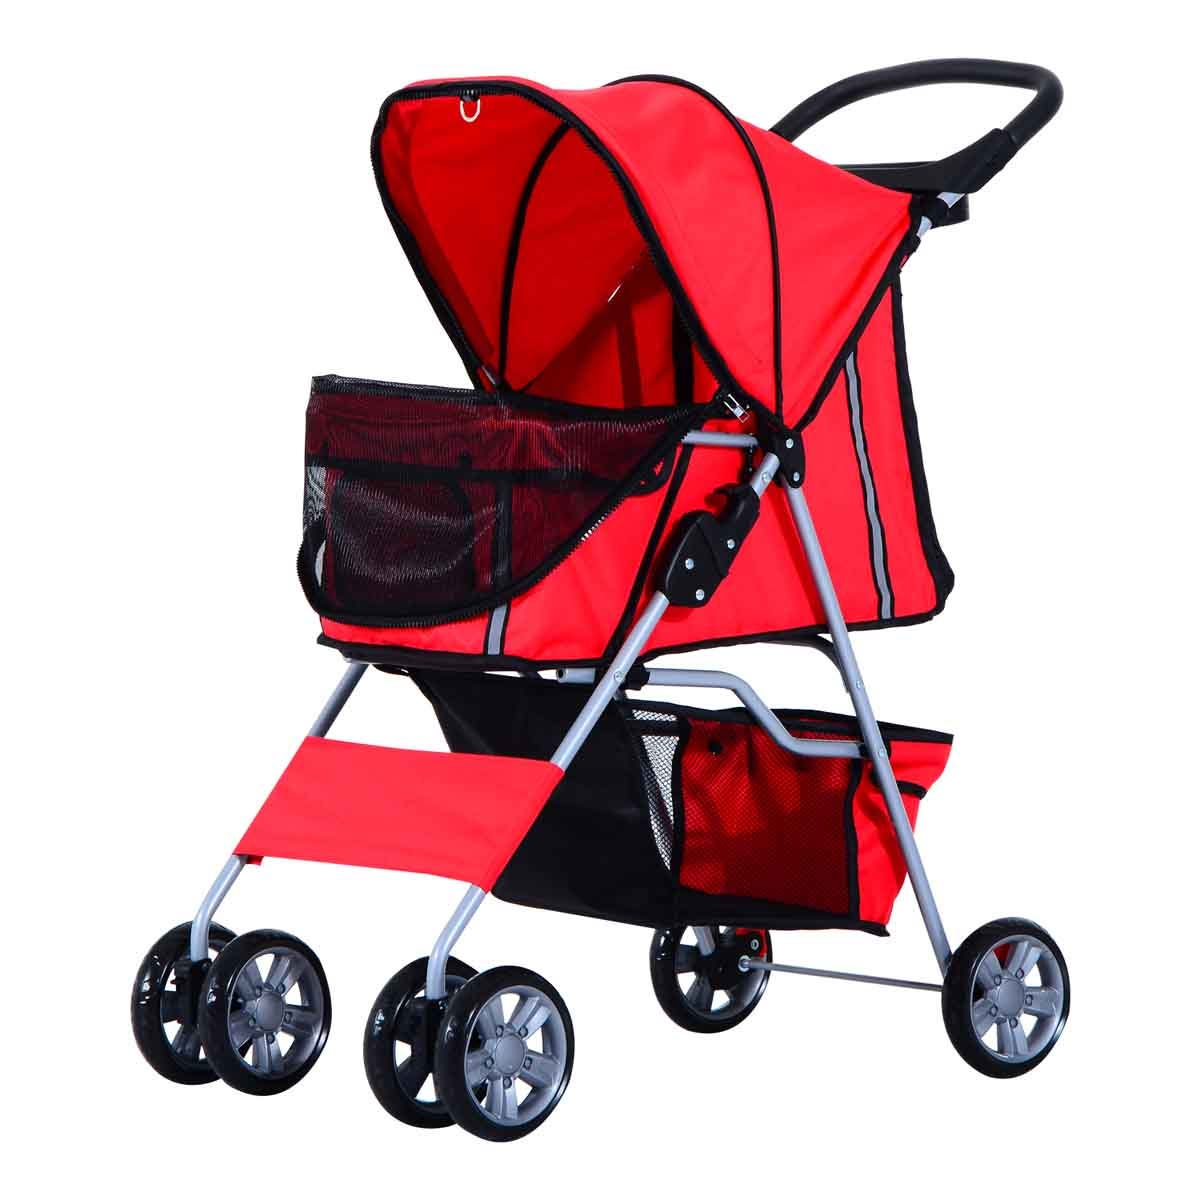 PawHut Foldable 4 Wheels Deluxe Pet Stroller & Carrier For Travel W/ Dogs & Cats - Red